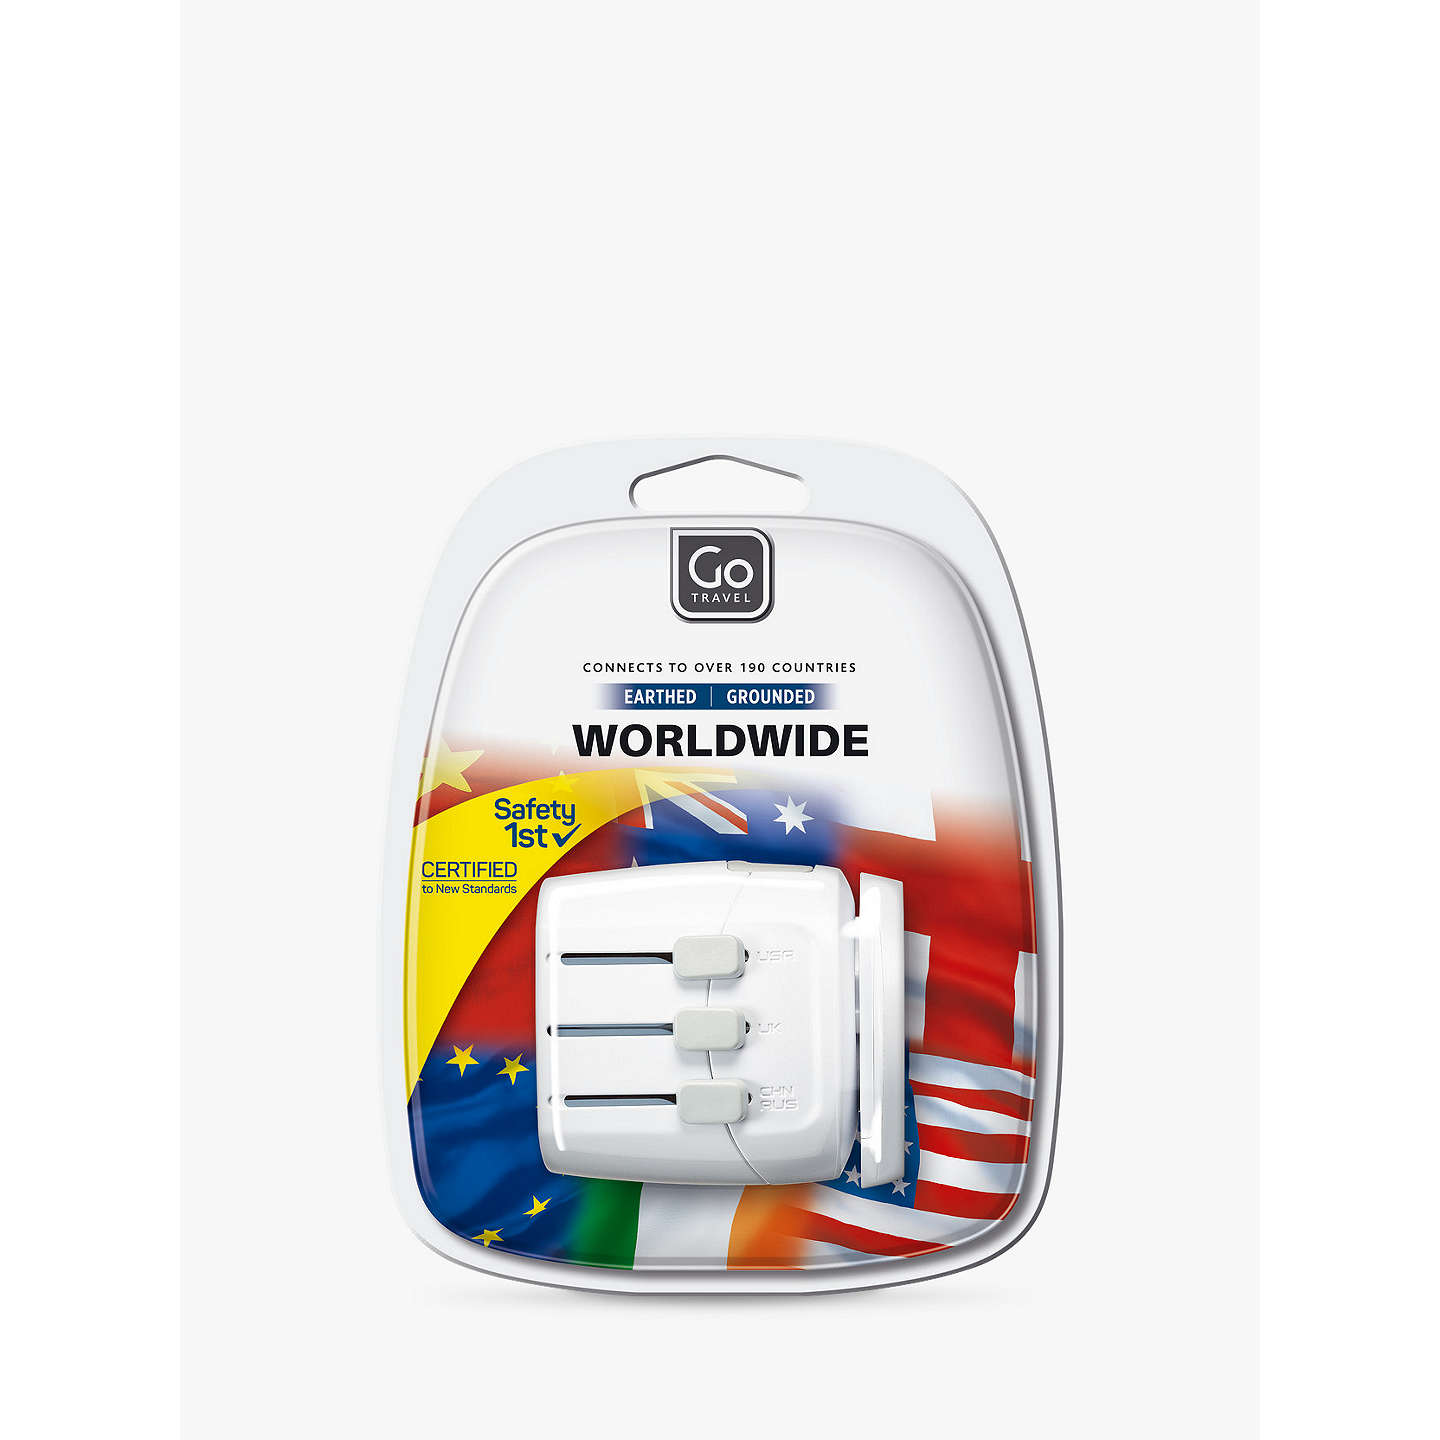 Go Travel Worldwide Adaptor for UK Electrical at John Lewis